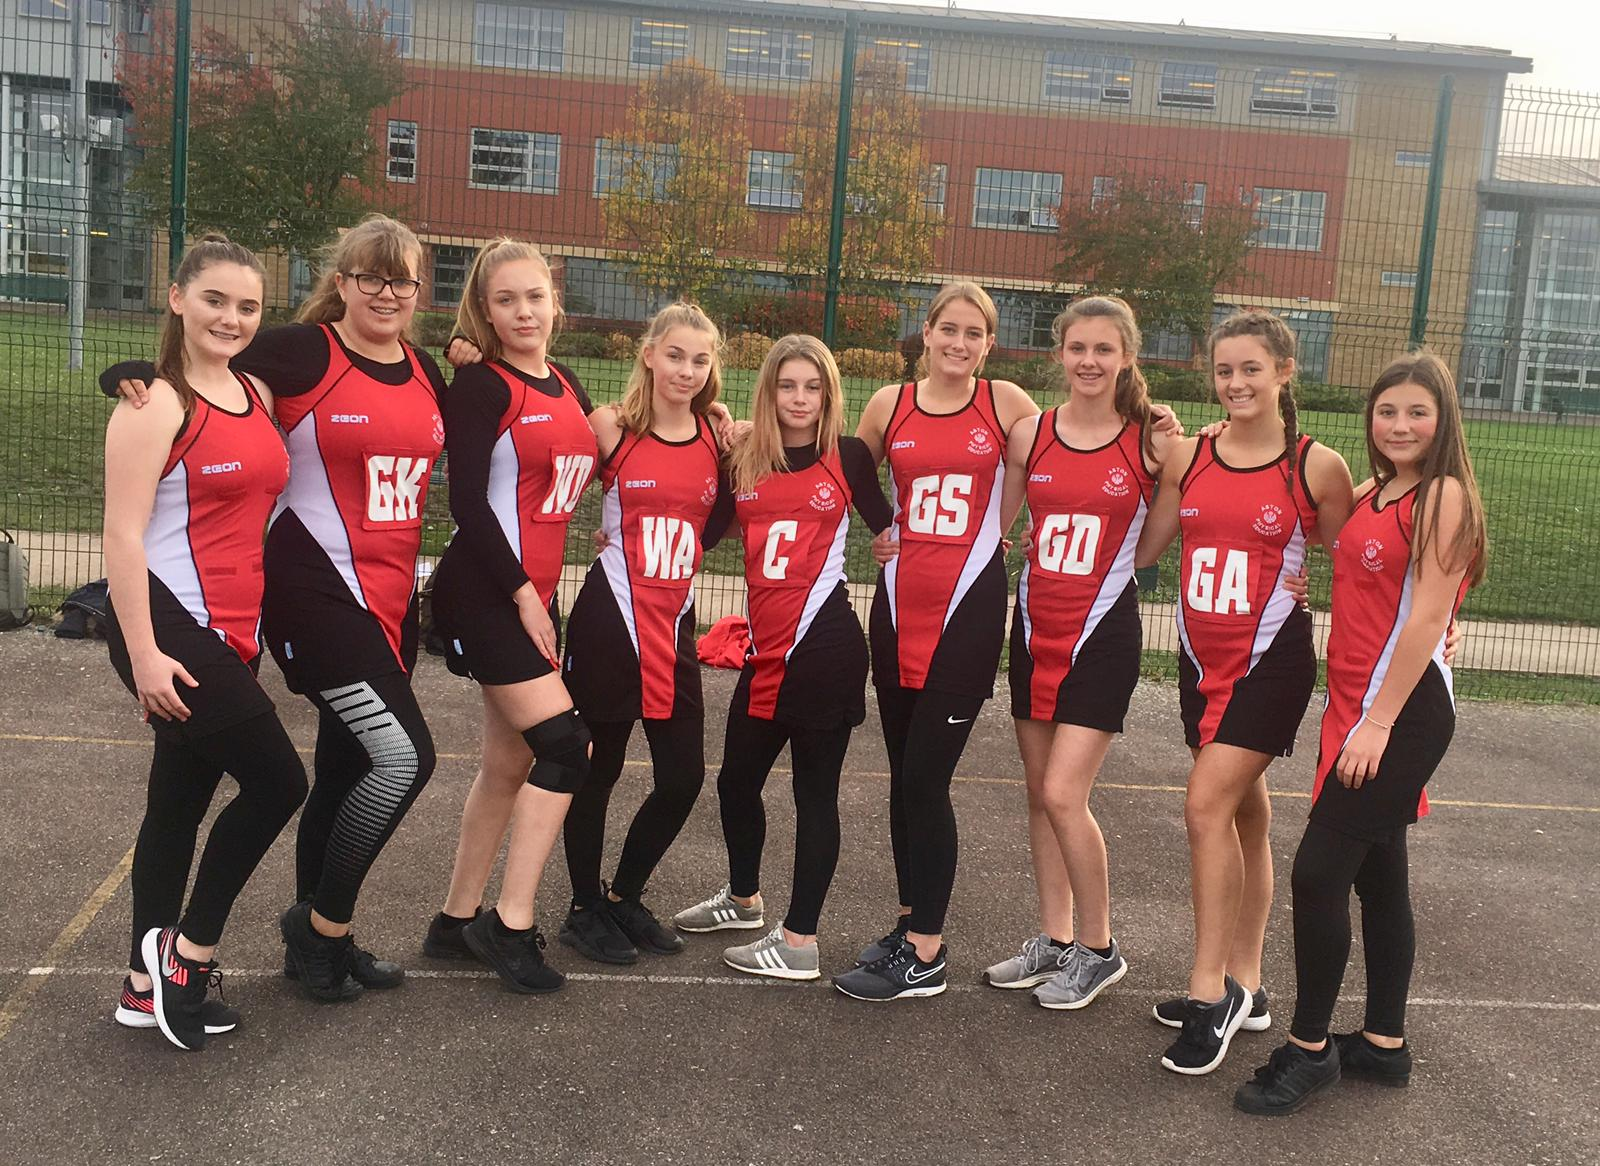 Aston Academy's Year 10 netball team will take part in the Rotherham Finals. Penguin PR: public relations, media and communications